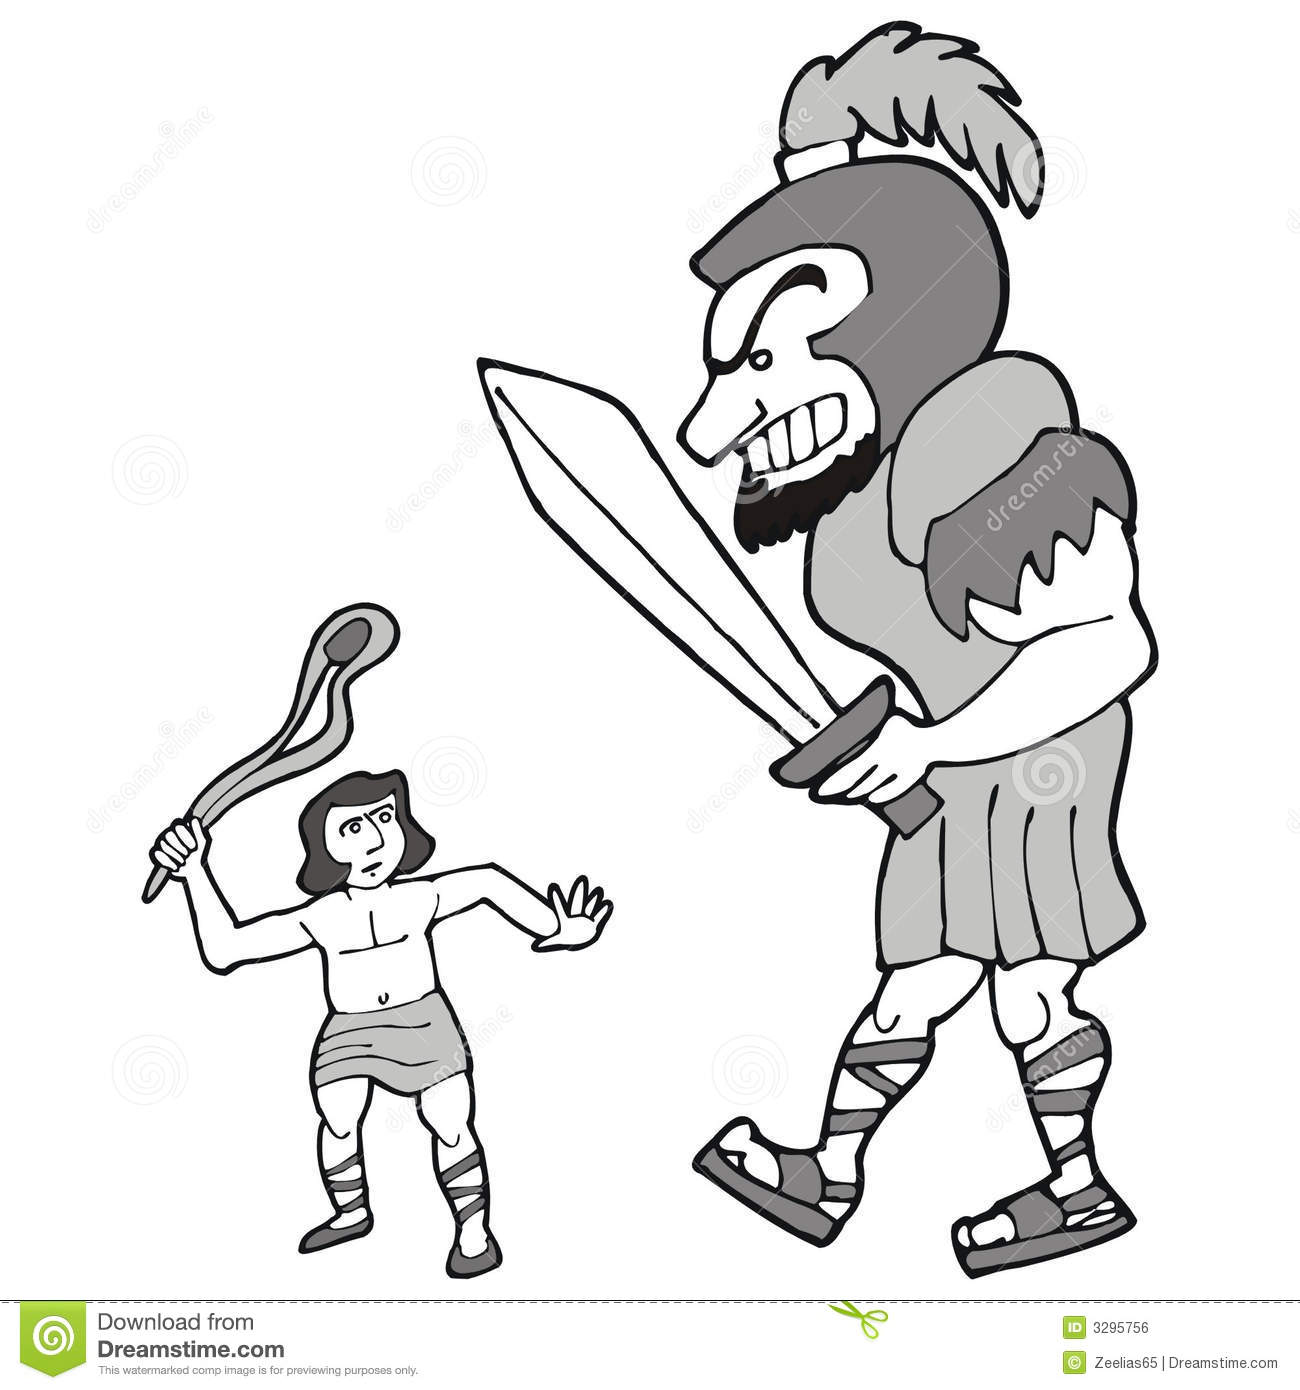 David and goliath clipart png transparent stock David and goliath clipart 2 » Clipart Station png transparent stock